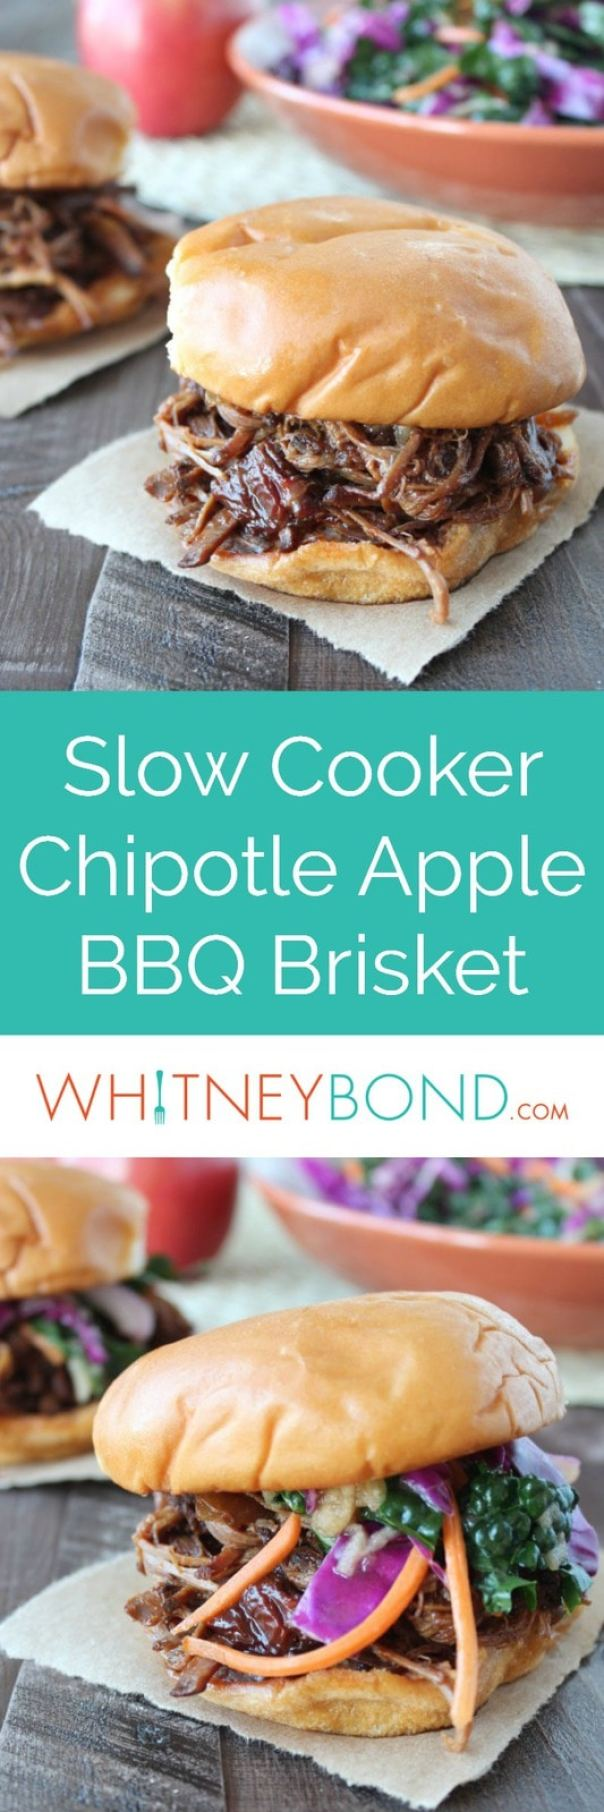 The combination of sweet apples and spicy chipotle peppers give a ton of flavor to this slow cooked, shredded BBQ Brisket sandwich recipe.